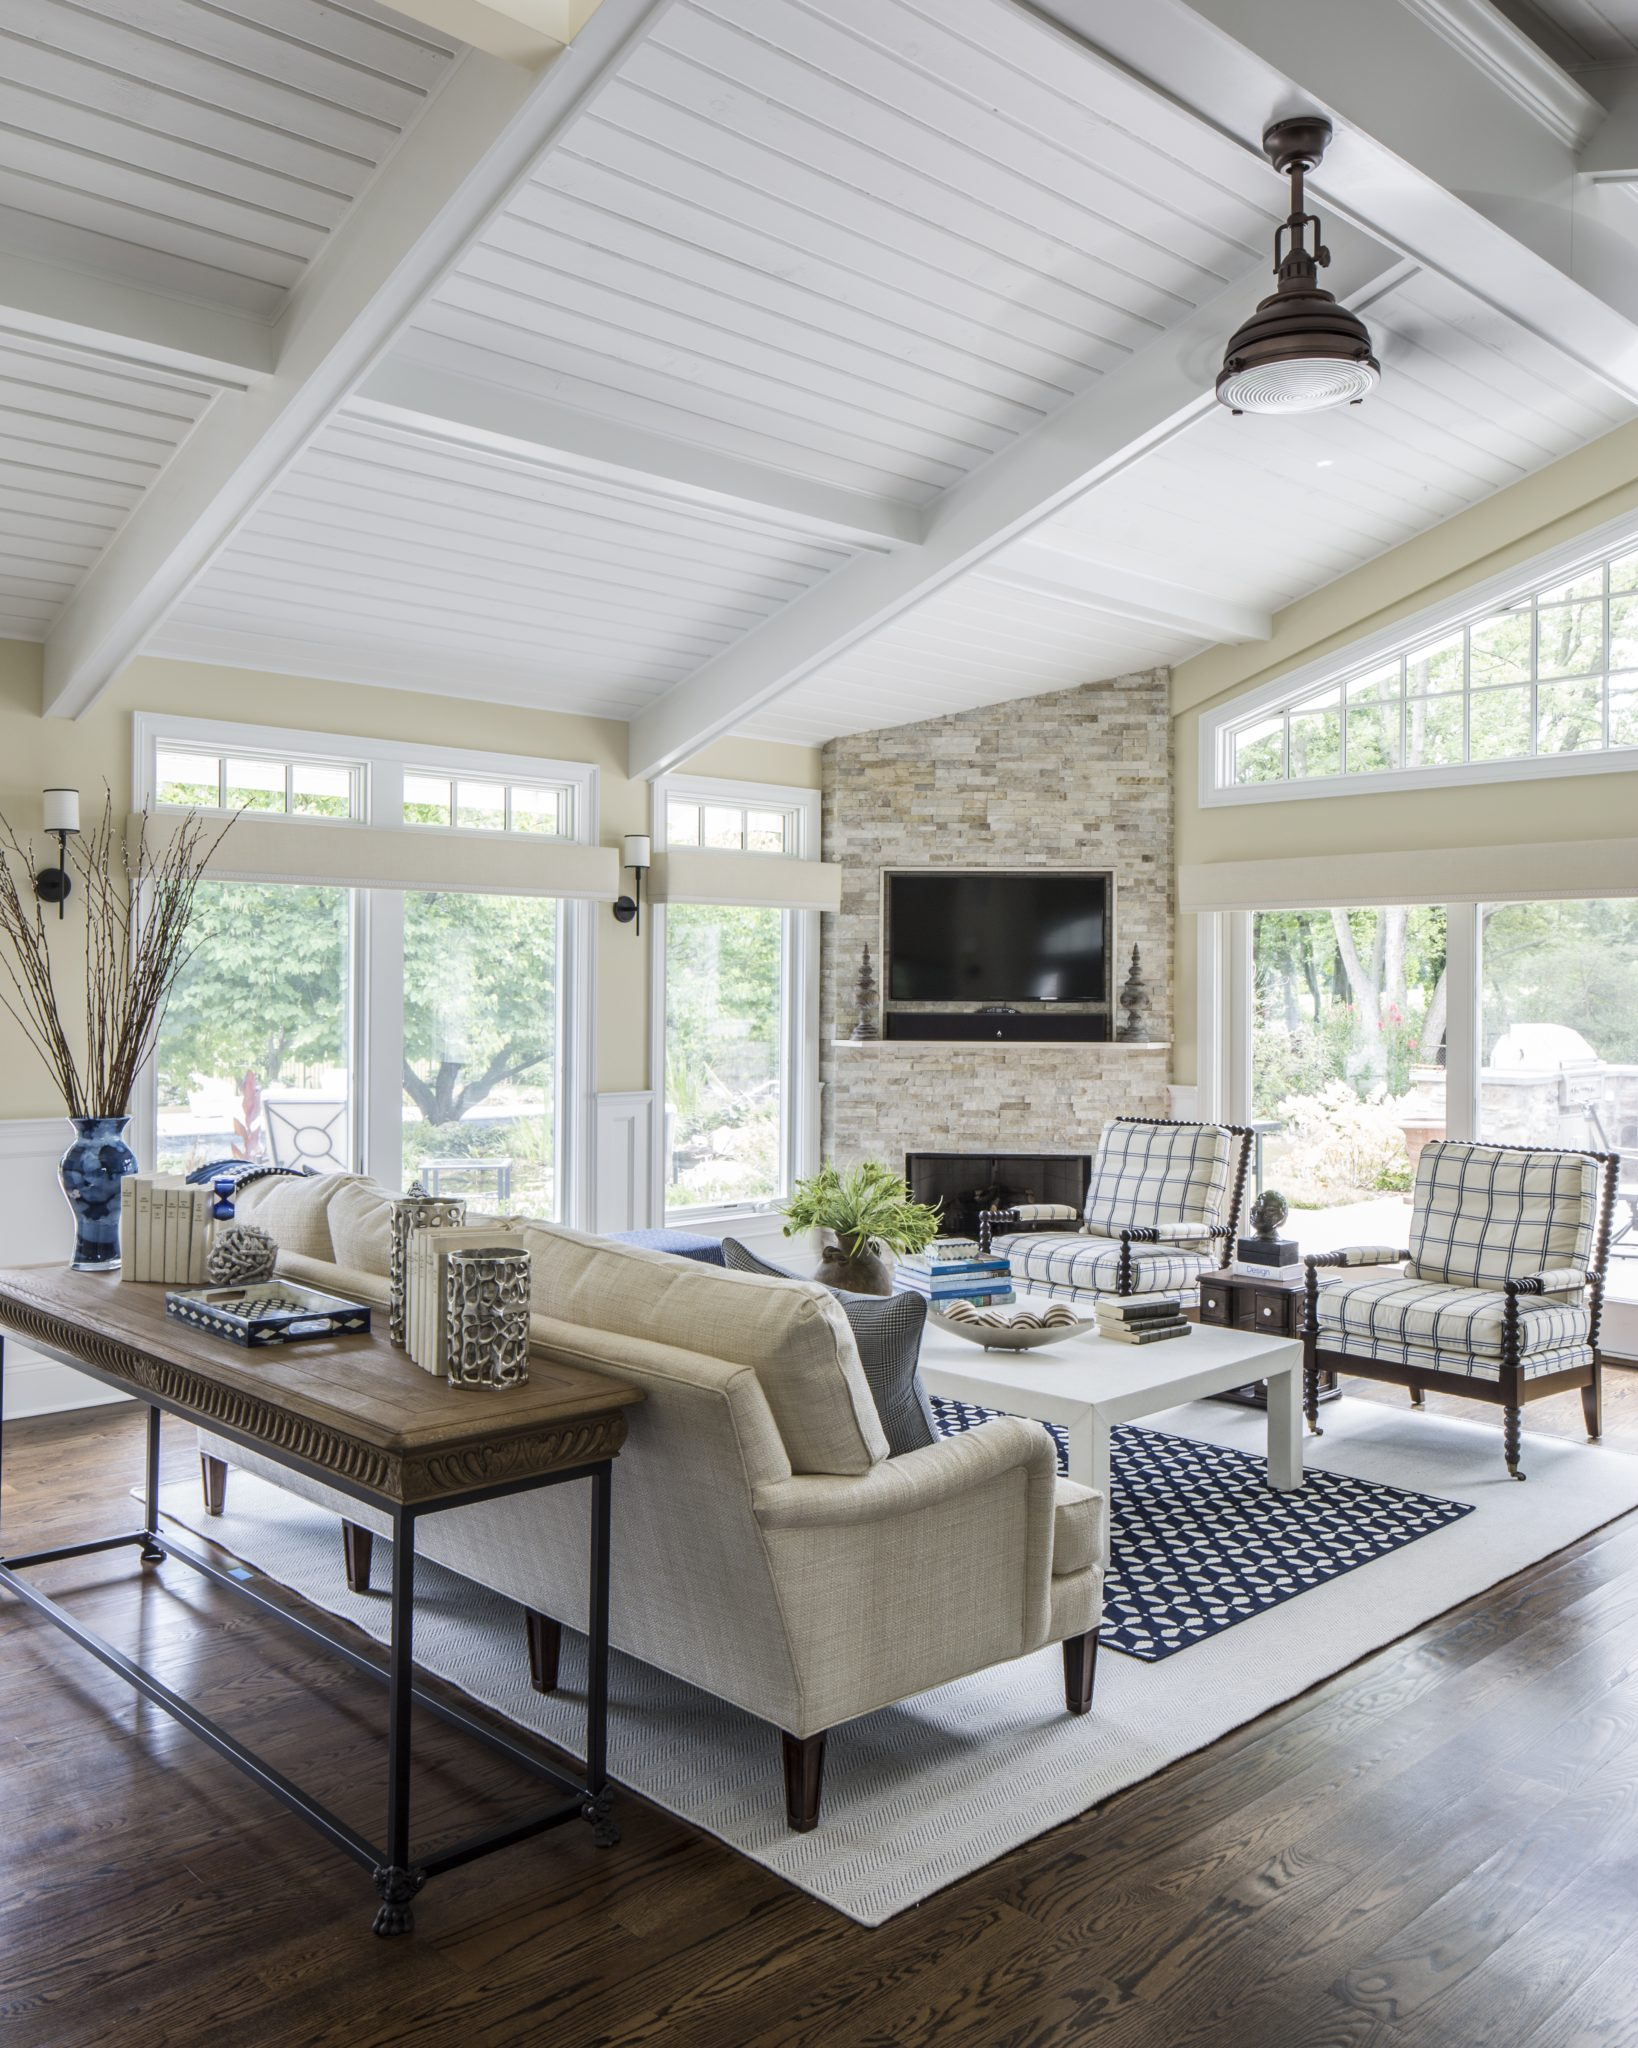 Great room with wall of windows overlooking yard with transoms and ceiling detail by Kim Radovich, Kim E. Courtney Interiors